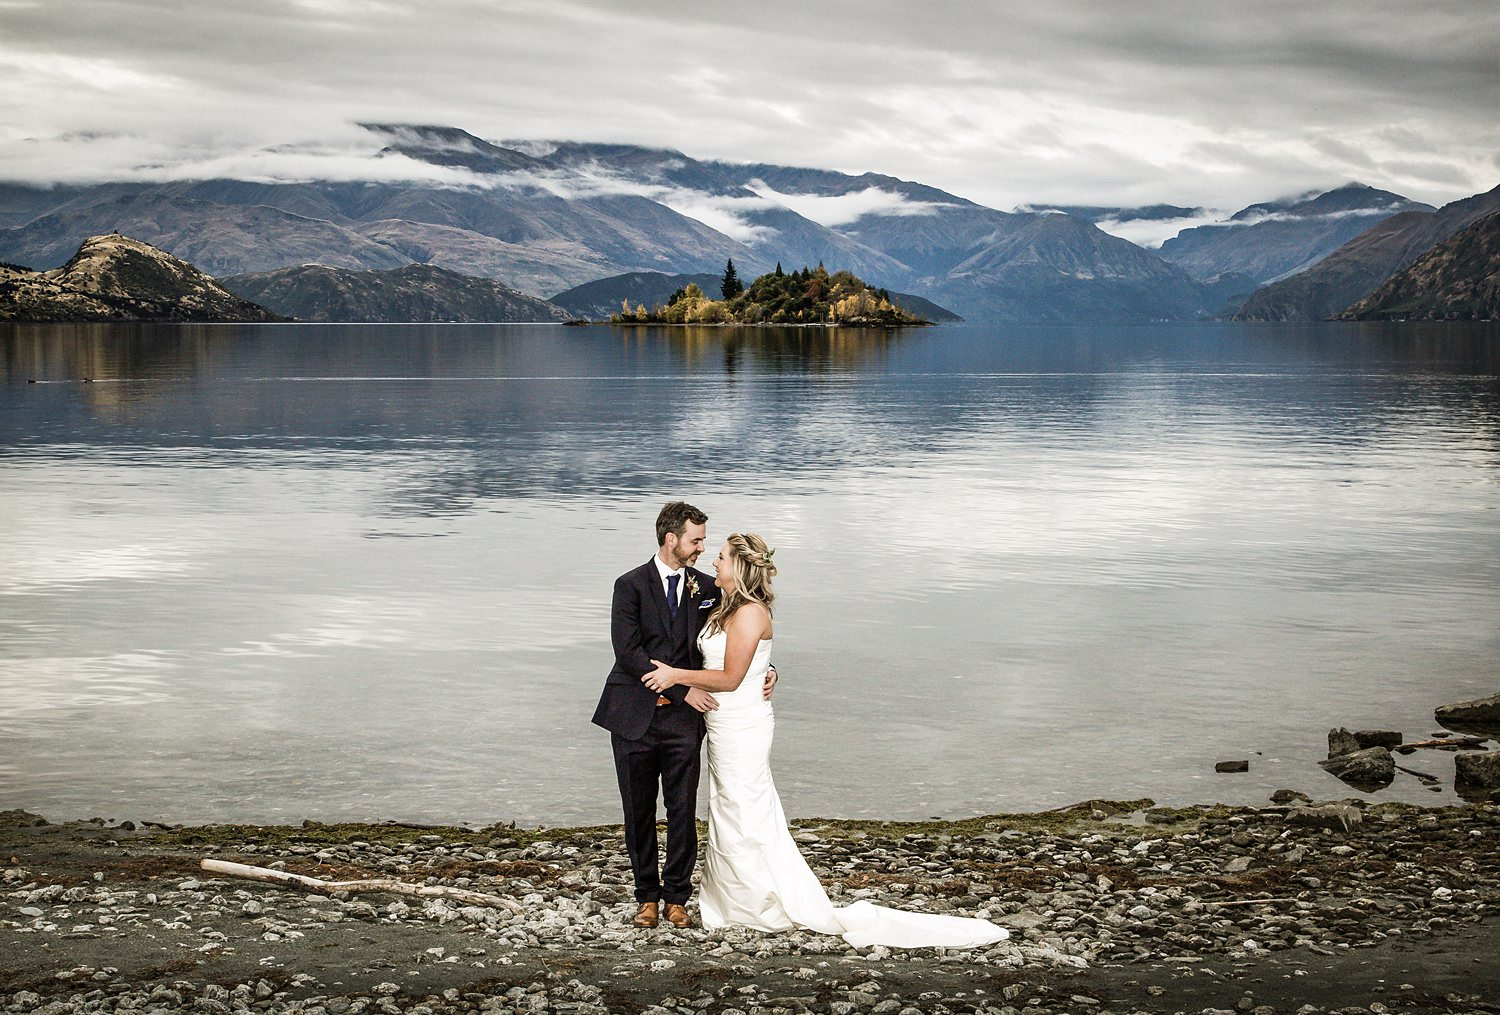 rippon-wedding-photography-20.jpg